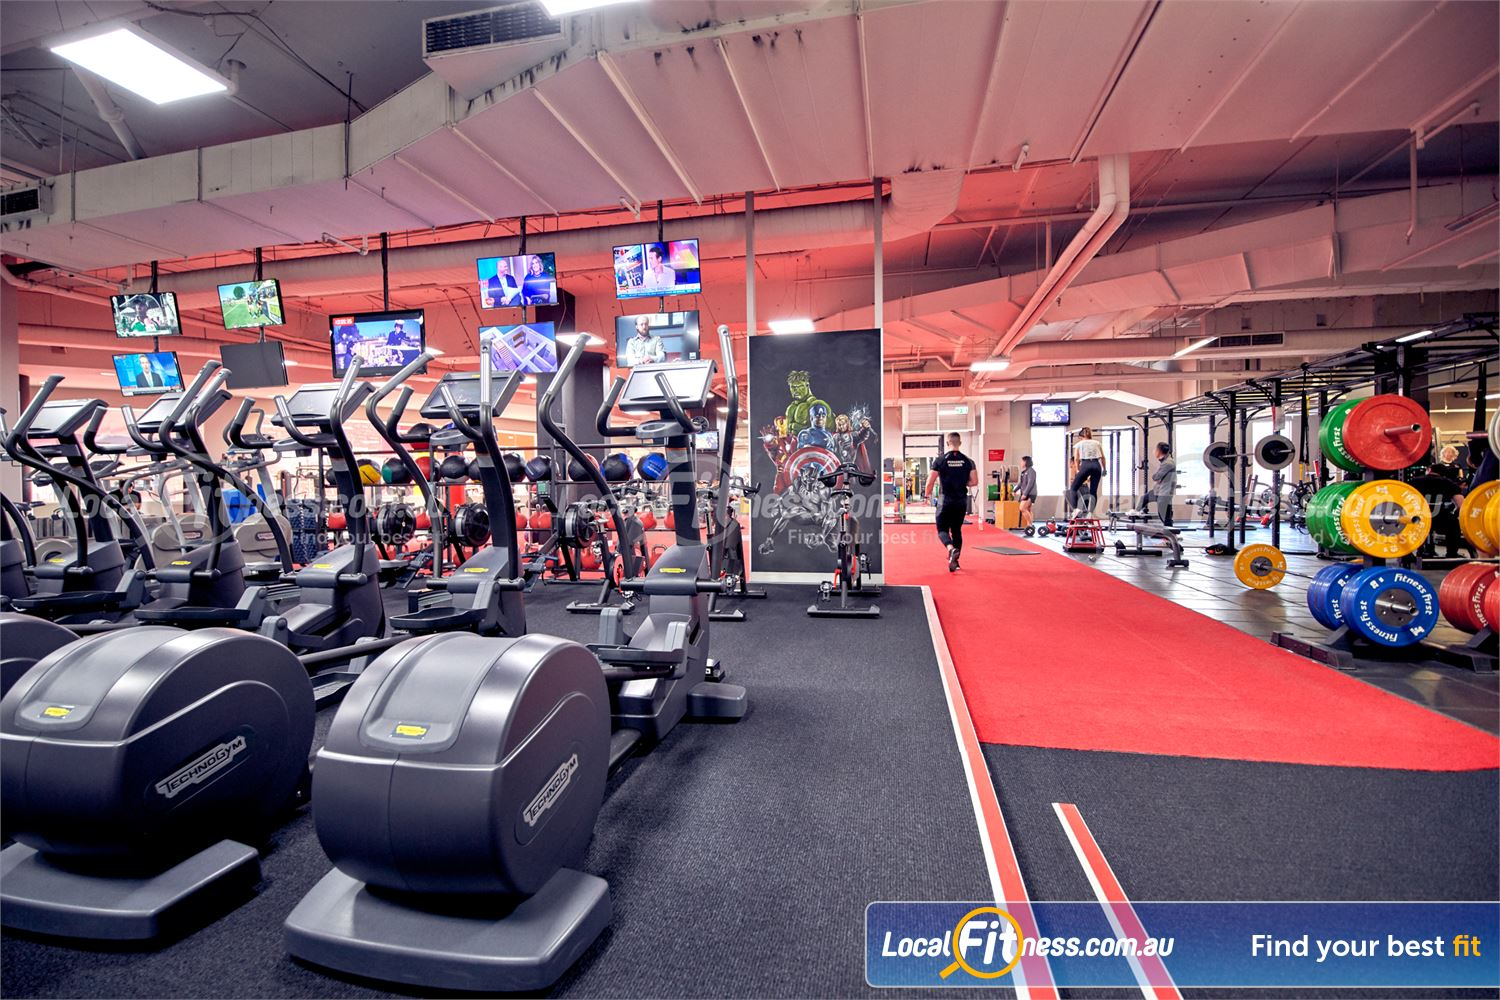 Fitness First Melbourne Central Platinum Melbourne Welcome to the Platinum Melbourne gym at Fitness First Melbourne Central.